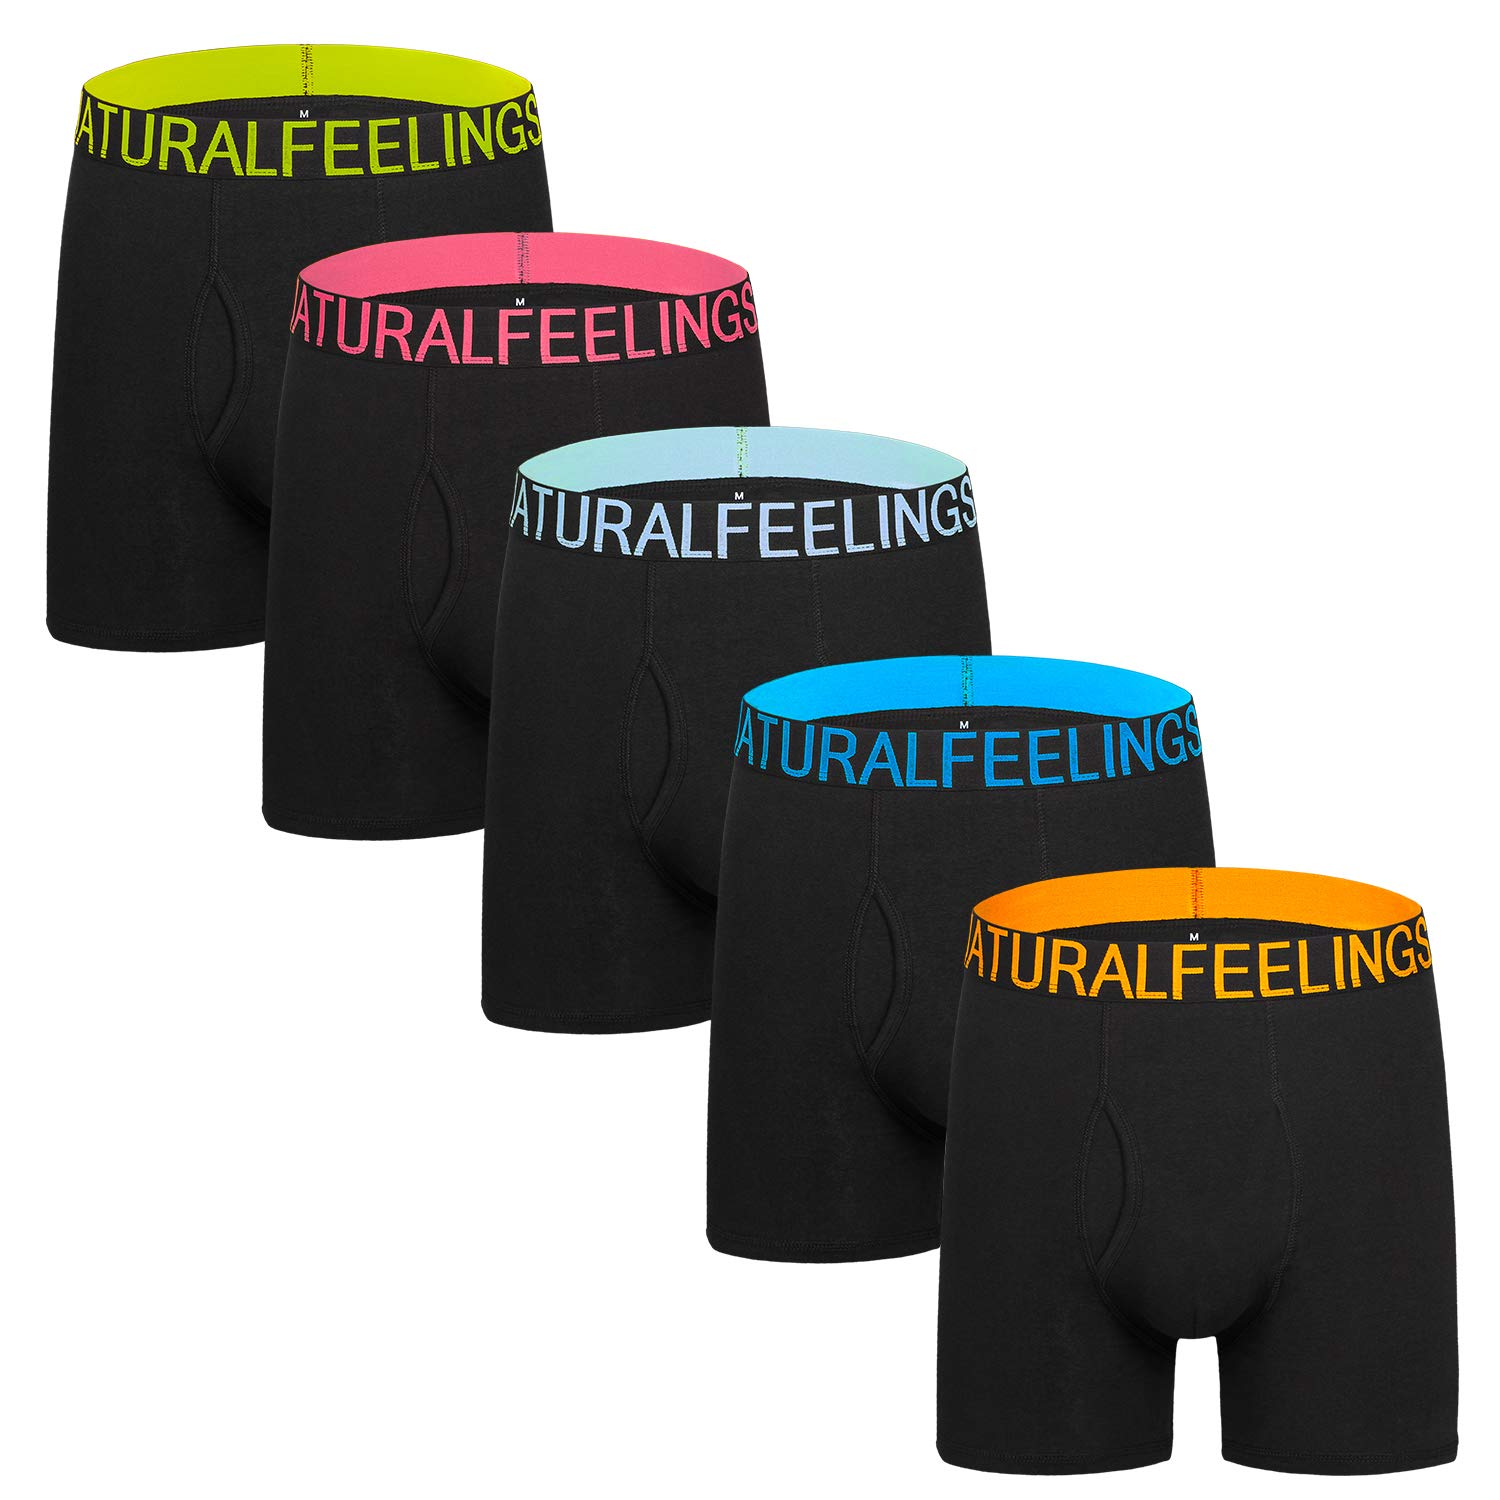 Natural Feelings Featuring Colorful Waistband Cotton Mens Underwear Boxer Briefs